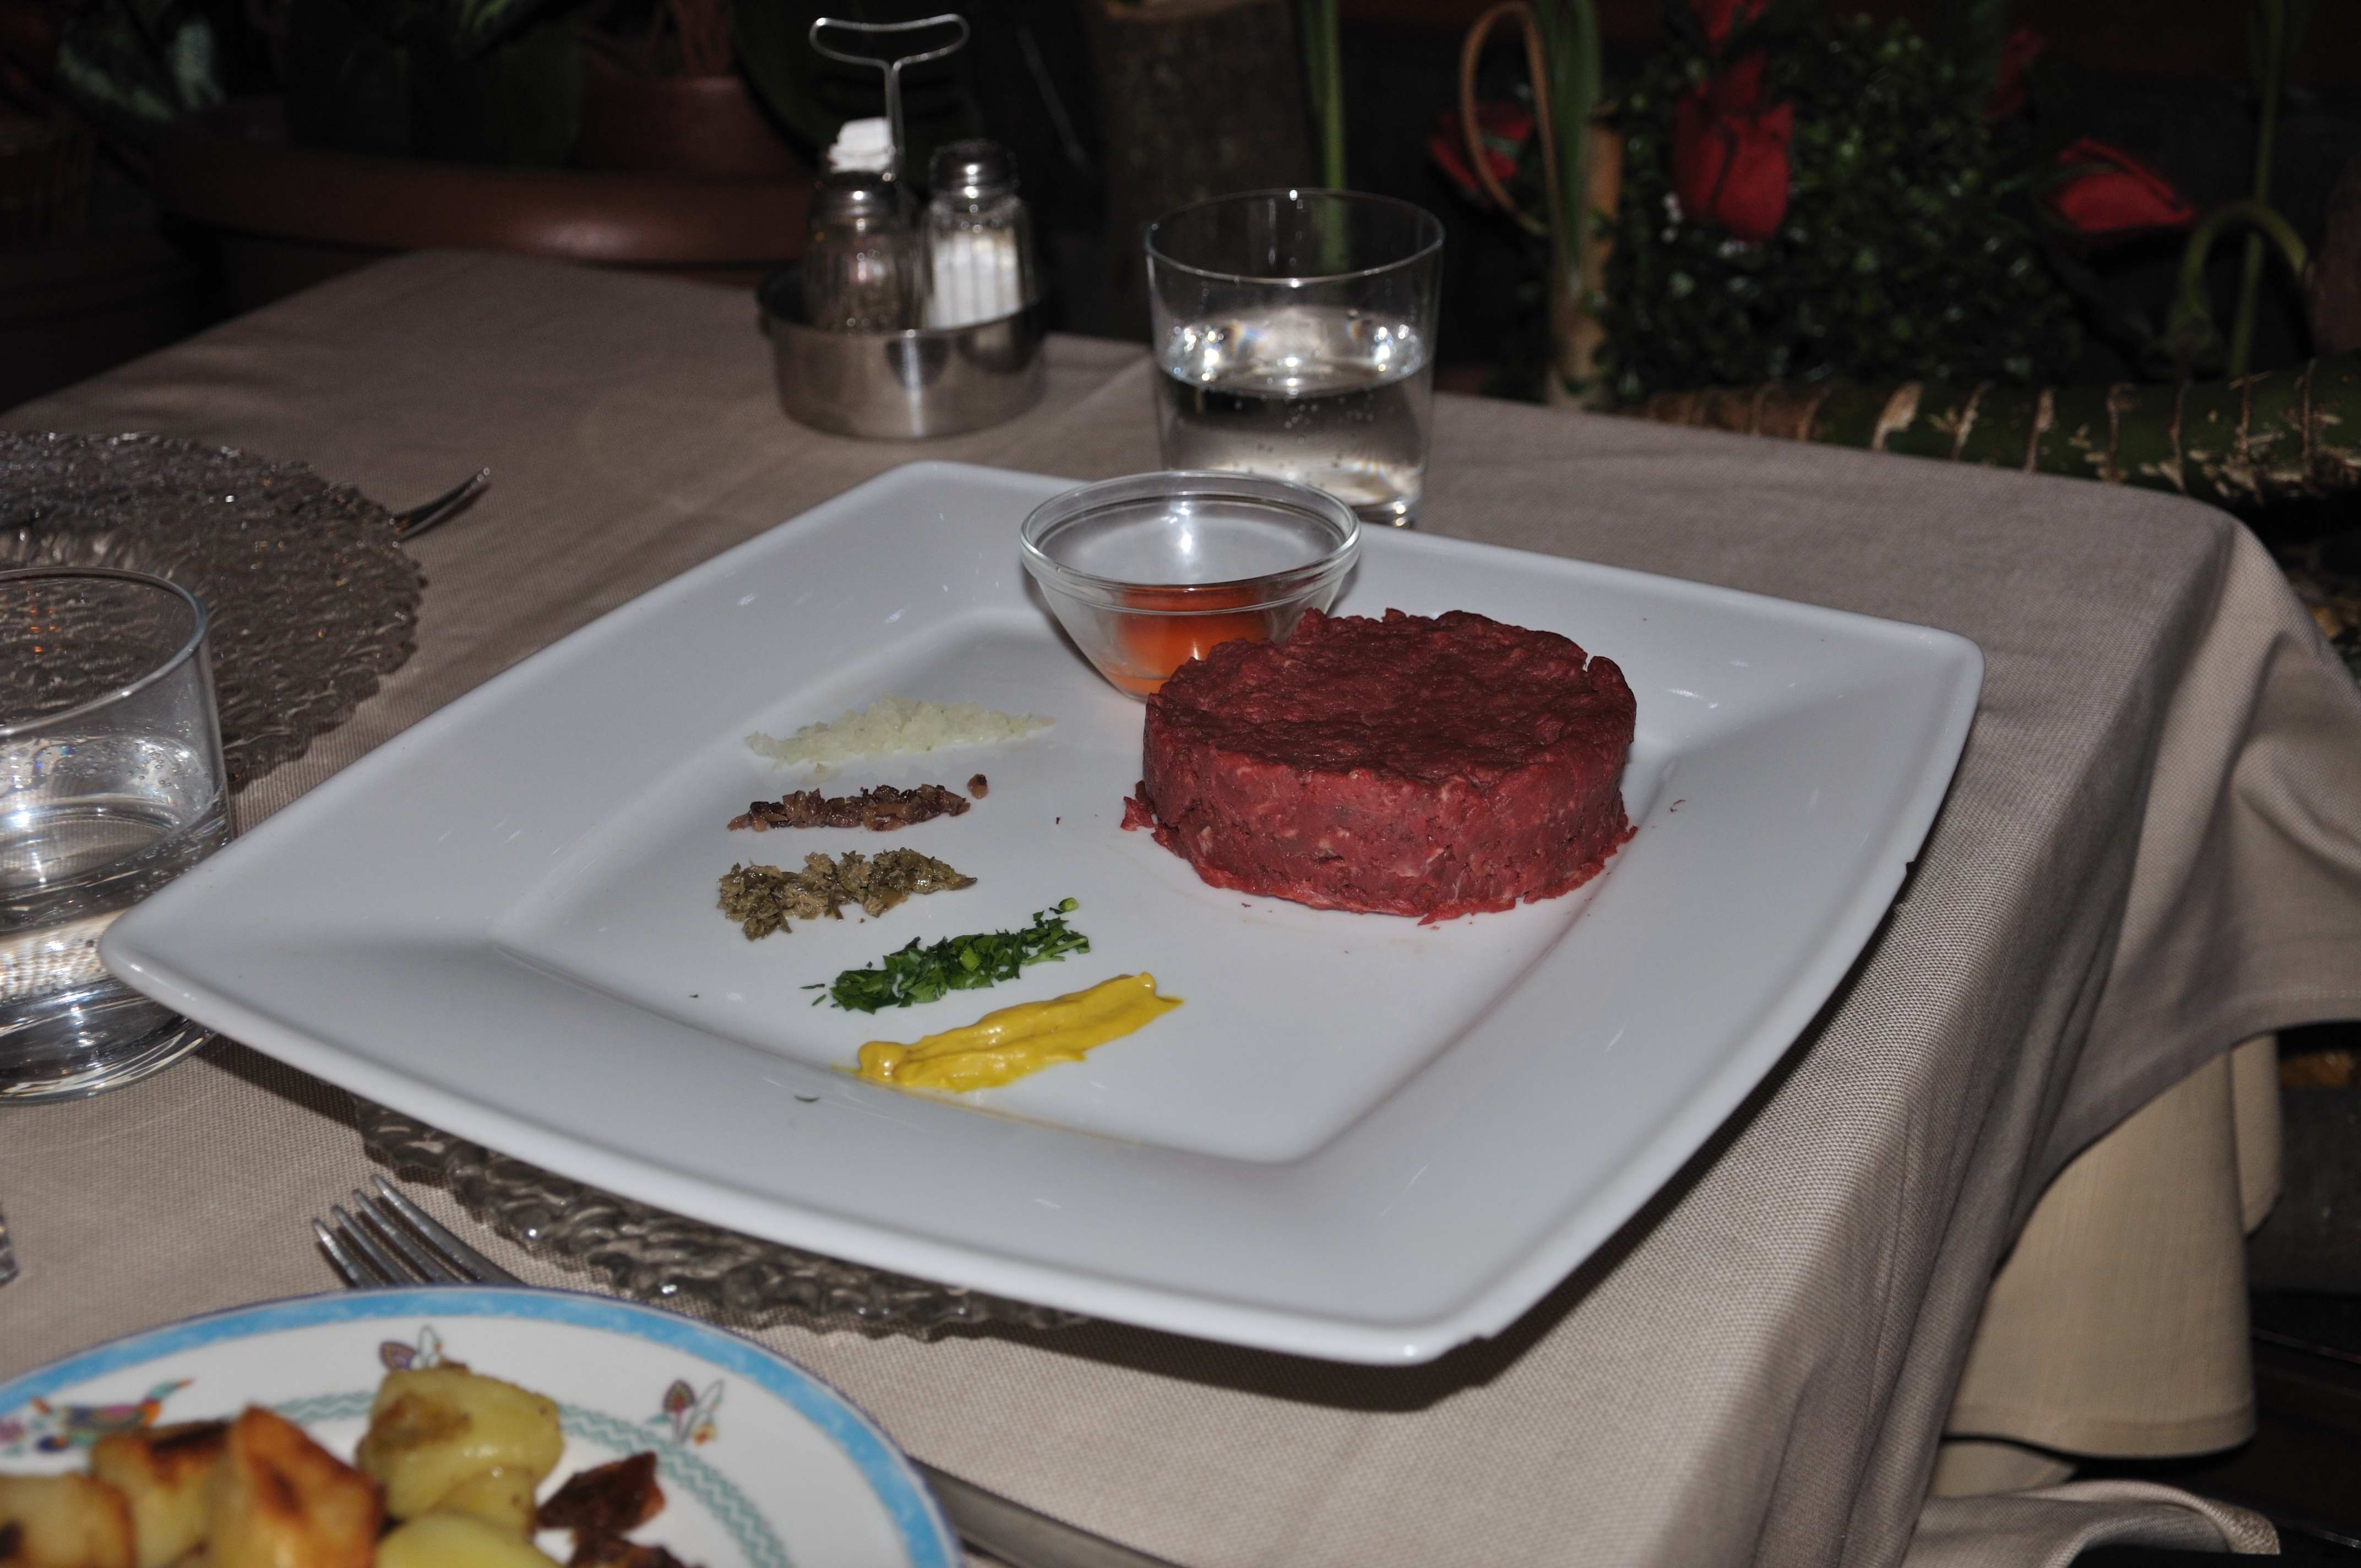 A fancy presentation of steak tartare on a square white plate with rays of chopped onion, mustard, parsley or chopped green onion, and possibly chopped bacon and a mushroom duxelle. An egg in a glass bowl is also present.